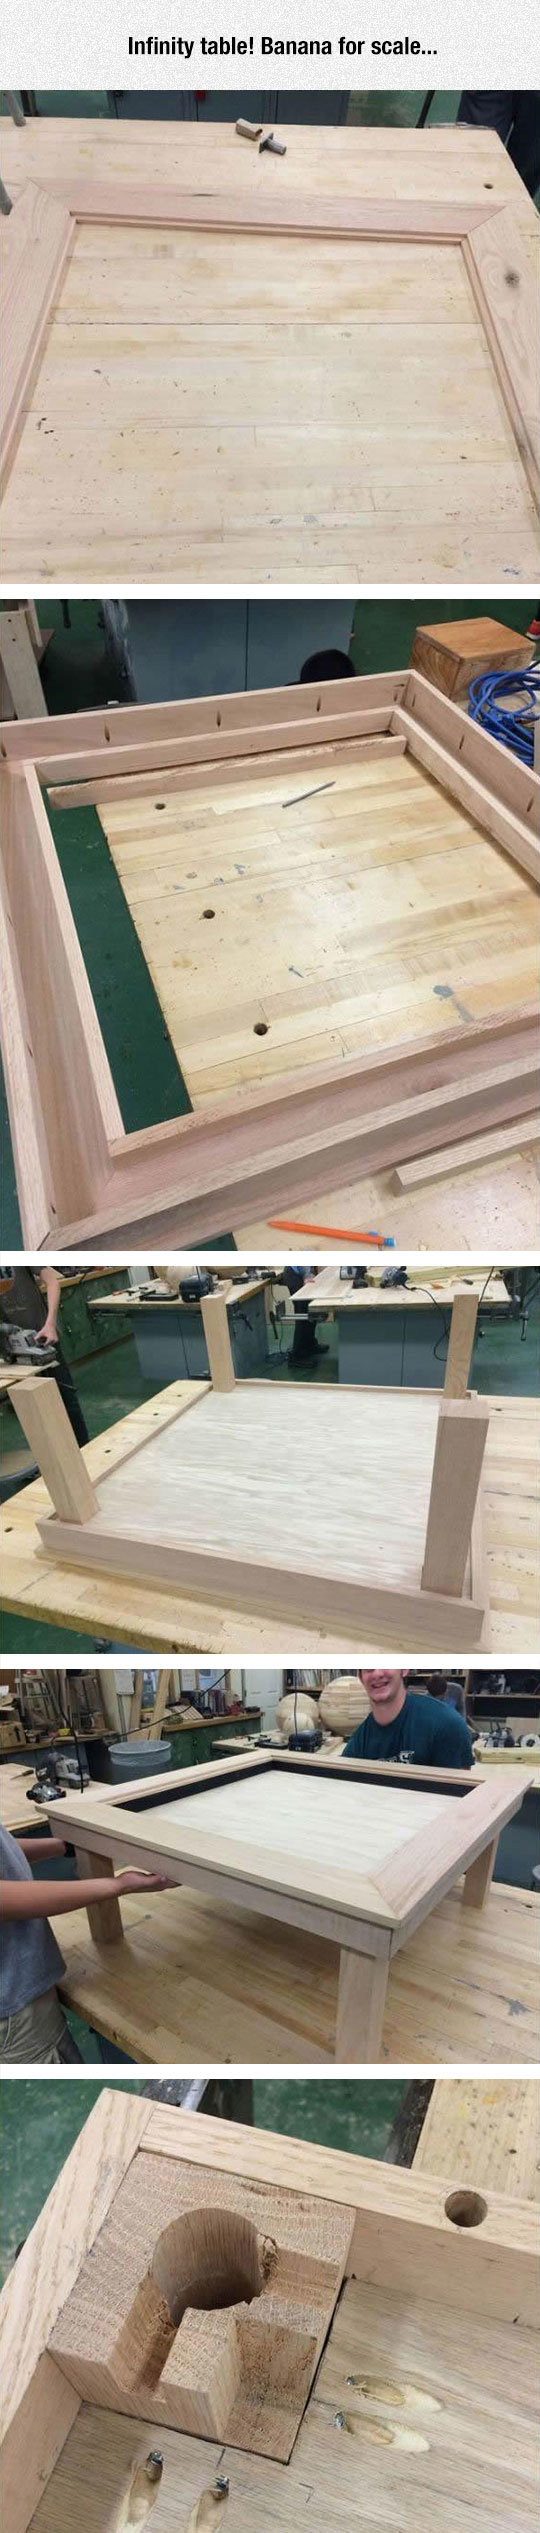 How To Build An Infinity Table. . Infinity table! Banana for scale.... Put your dick on it